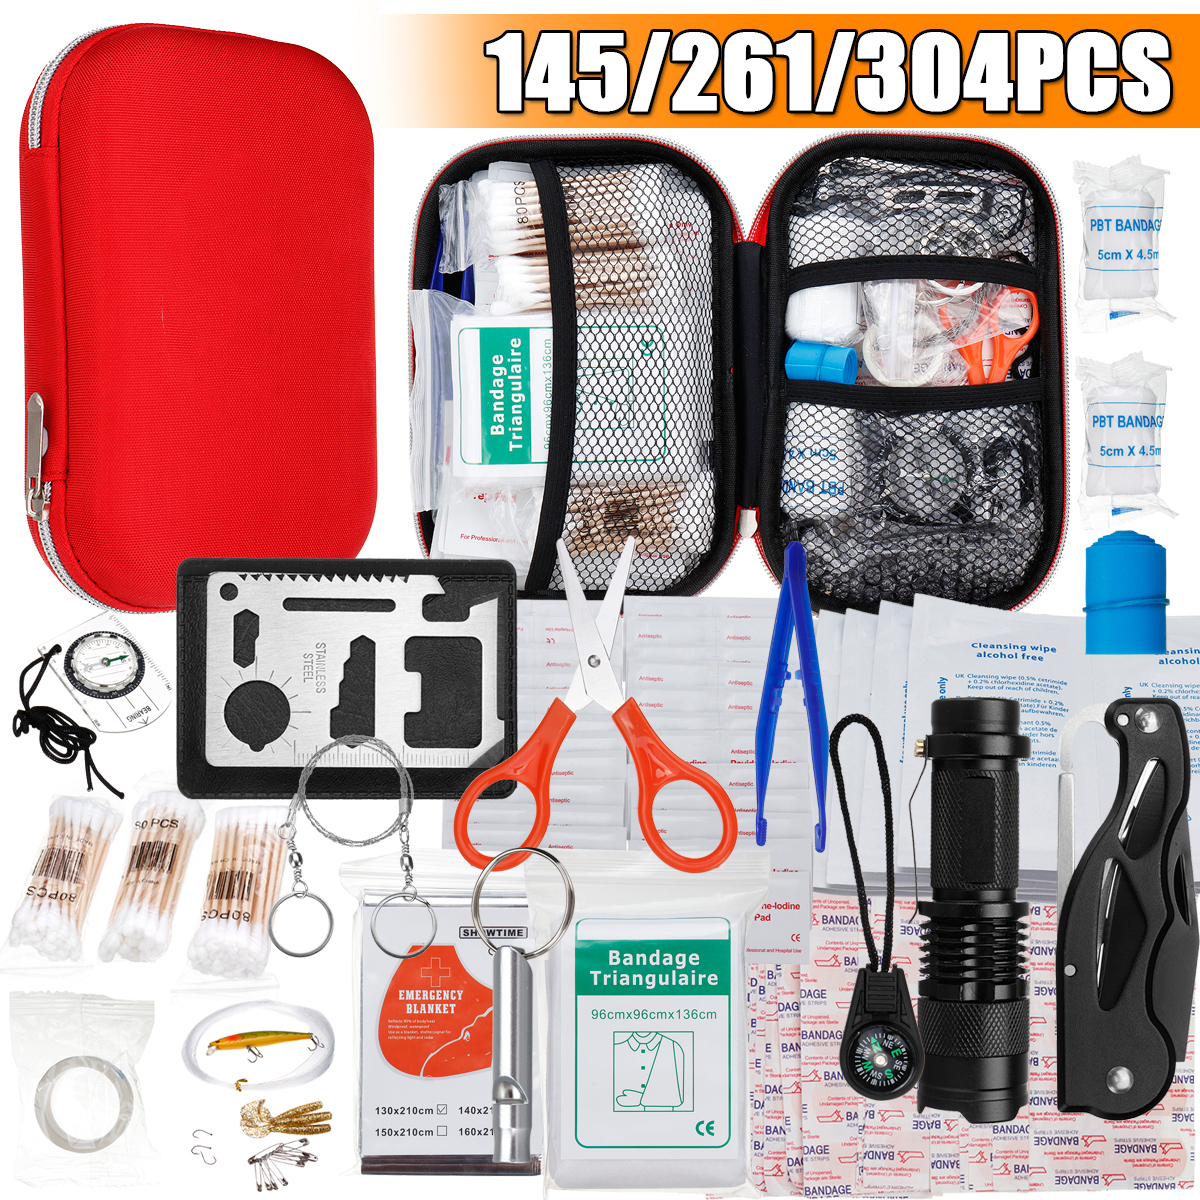 145/261/304 Pcs First Aid Kit Portable Outdoor Waterproof Emergency Medical Survival Box Bag Kit For Car Travel Camping Home